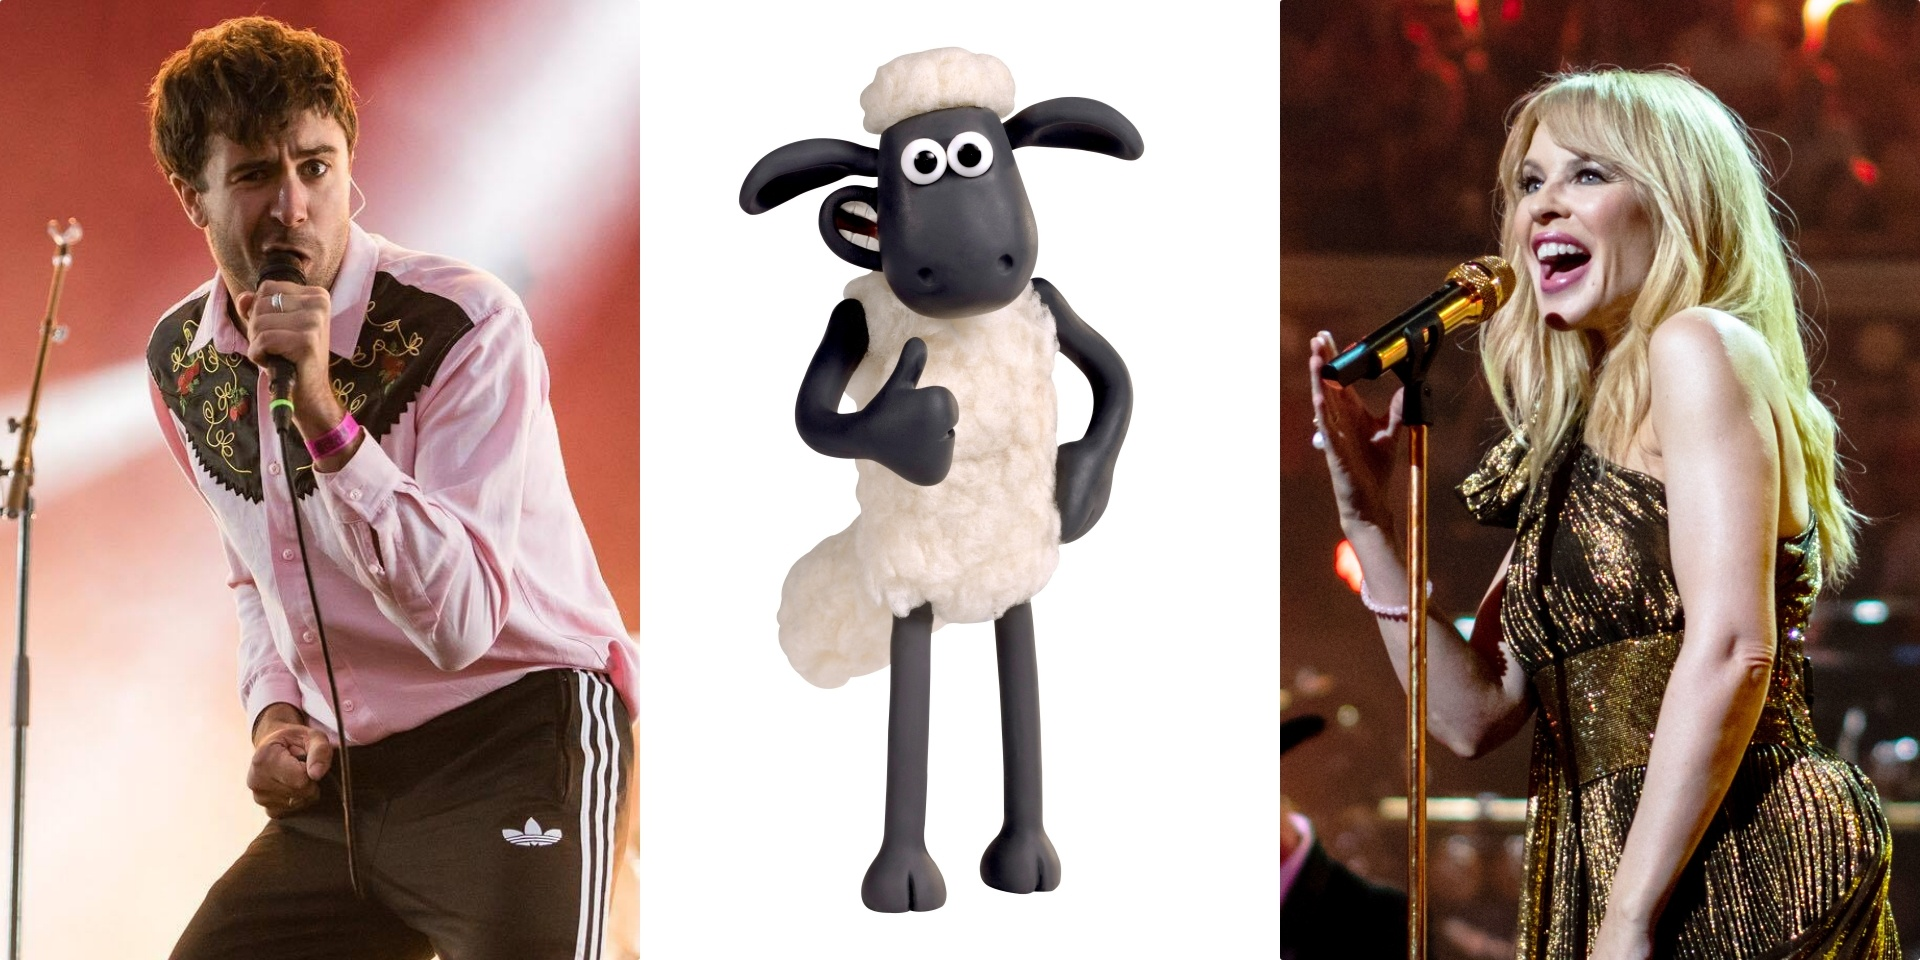 Kylie Minogue and The Vaccines team up for new song, 'Lazy' for upcoming Shaun the Sheep movie